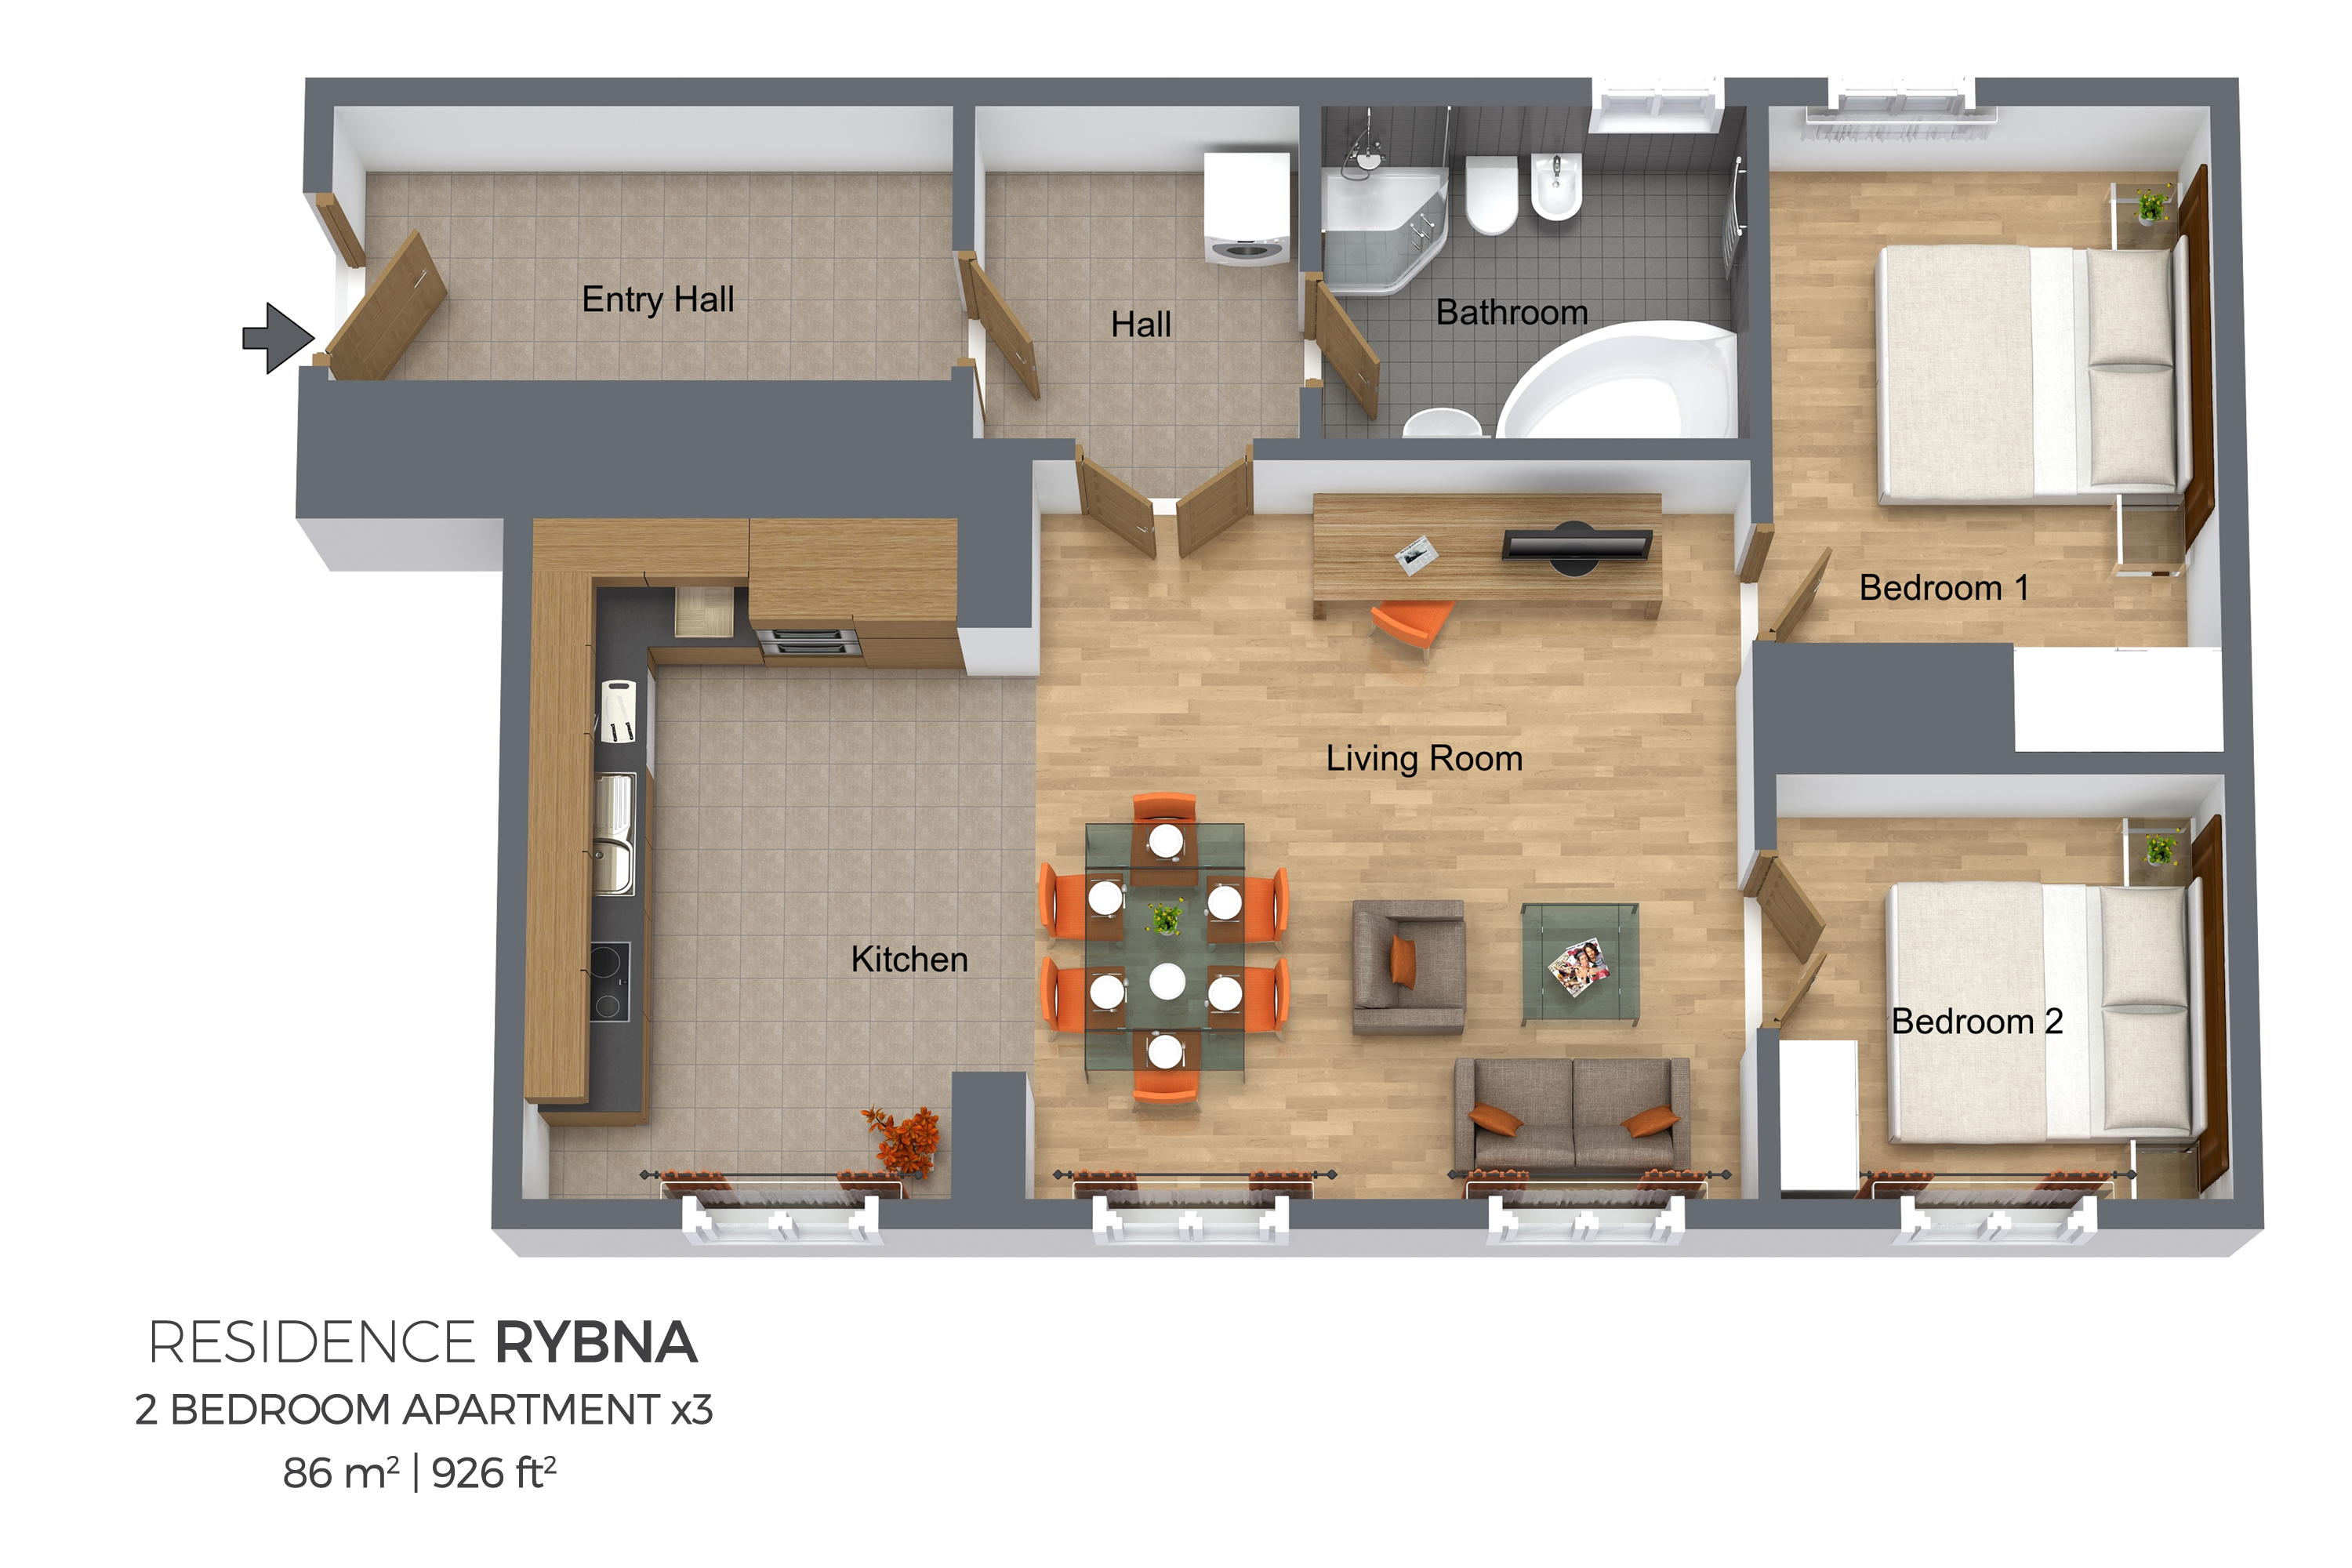 2 bed floor plan at Residence Rybna Apartments